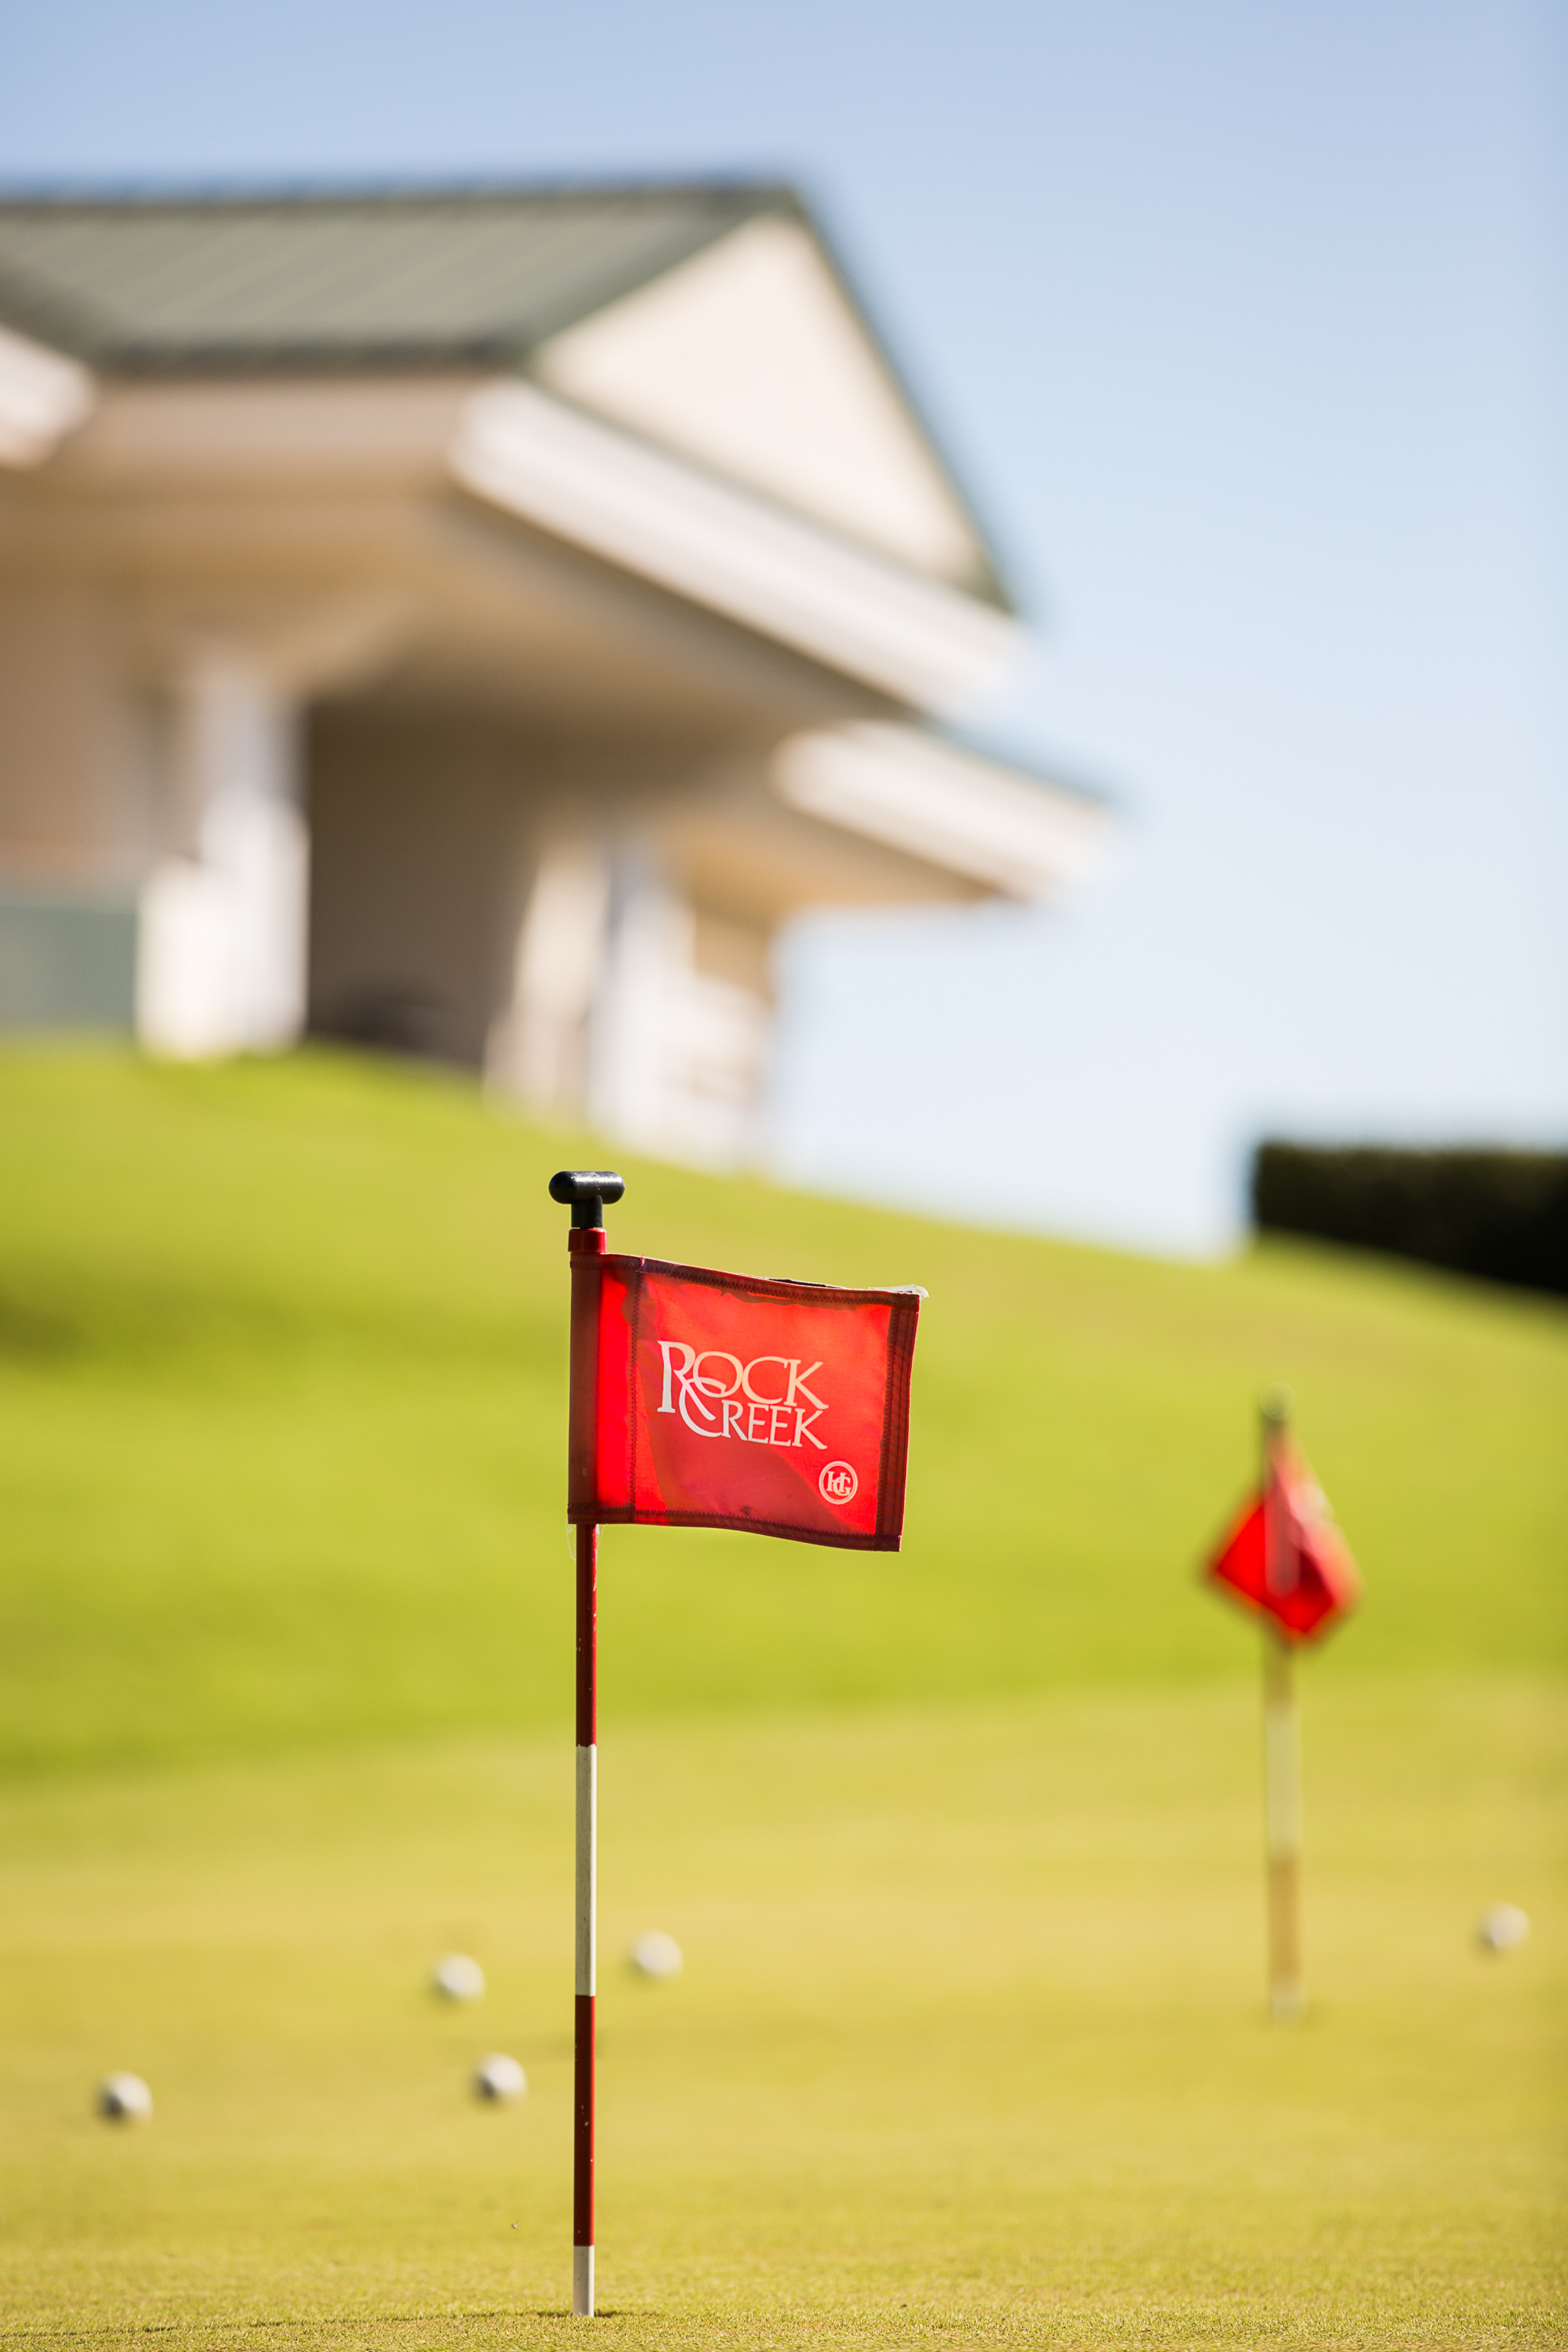 https://alabama-travel.s3.amazonaws.com/partners-uploads/photo/image/5a4e7134161f32238f0000d2/_141120_nrk_rock_creek_course_photos_26.jpg